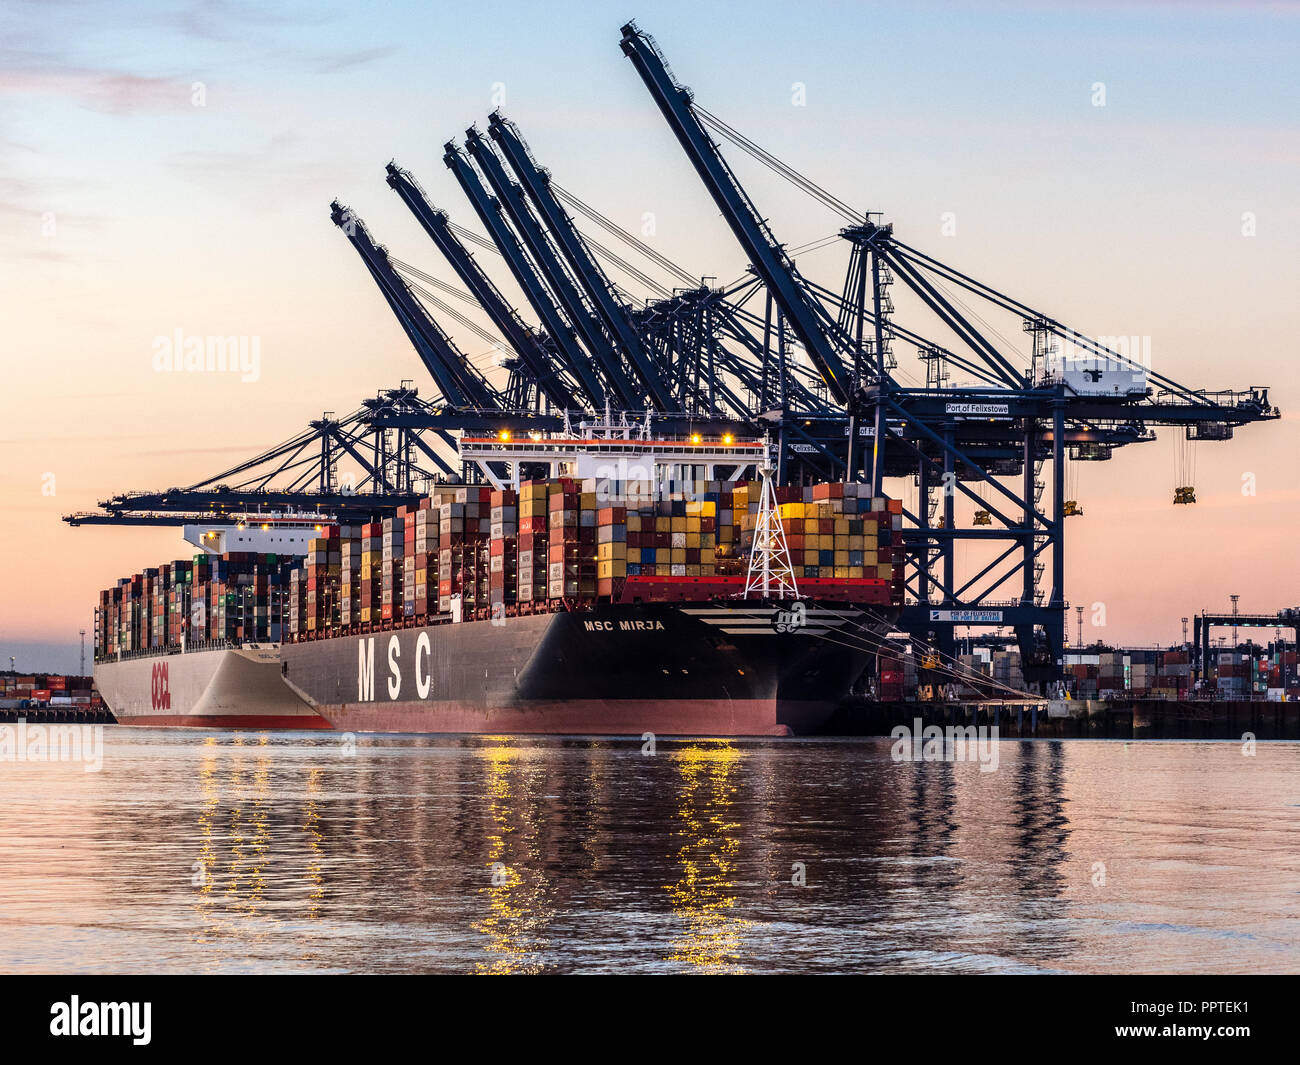 UK Trade - Containers Ships being loaded and unloaded in the Port of Felixstowe, the UK's largest container port. - Stock Image